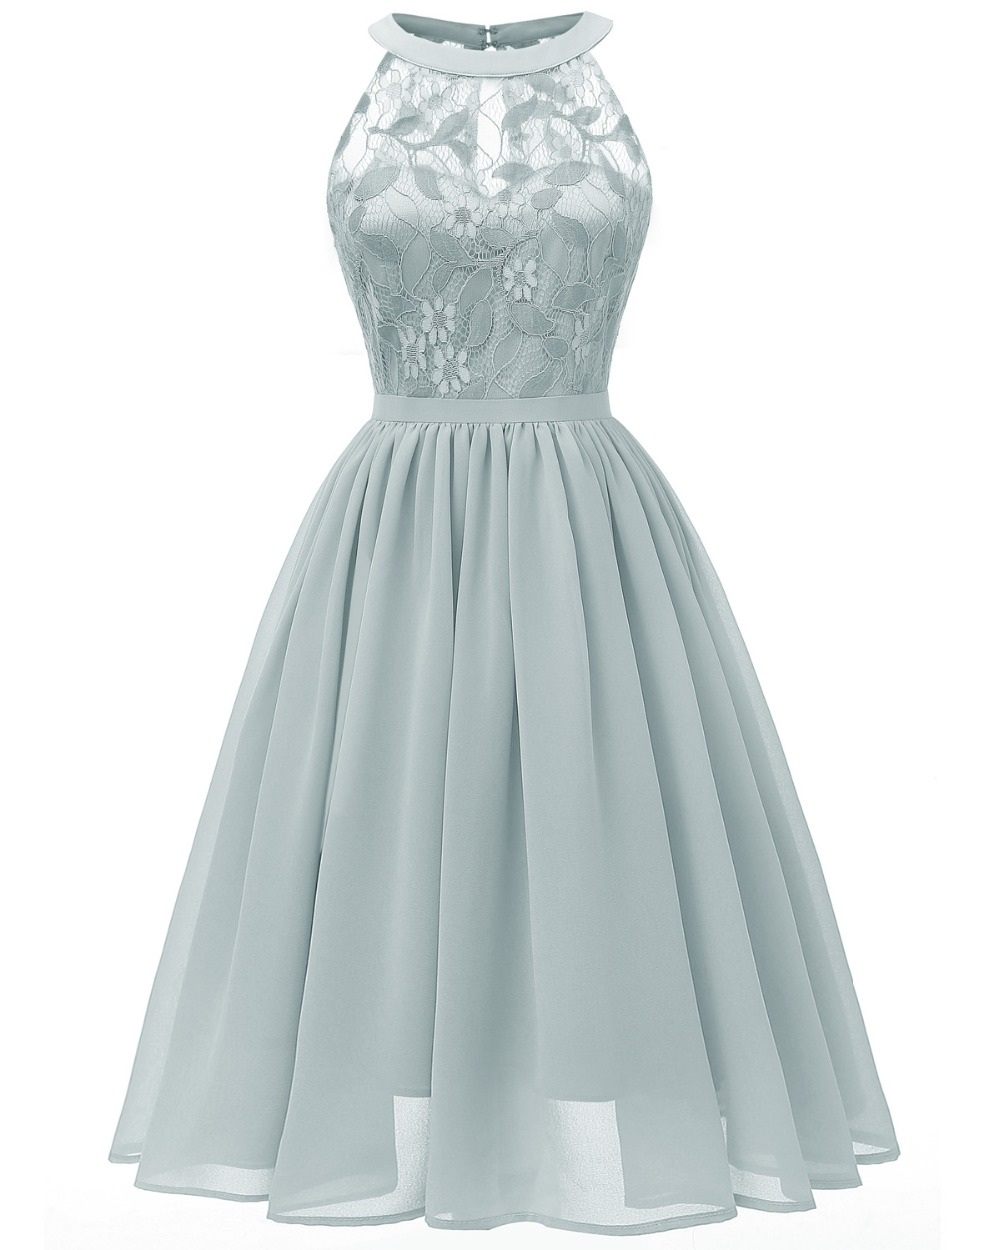 Formal Party Dress 14